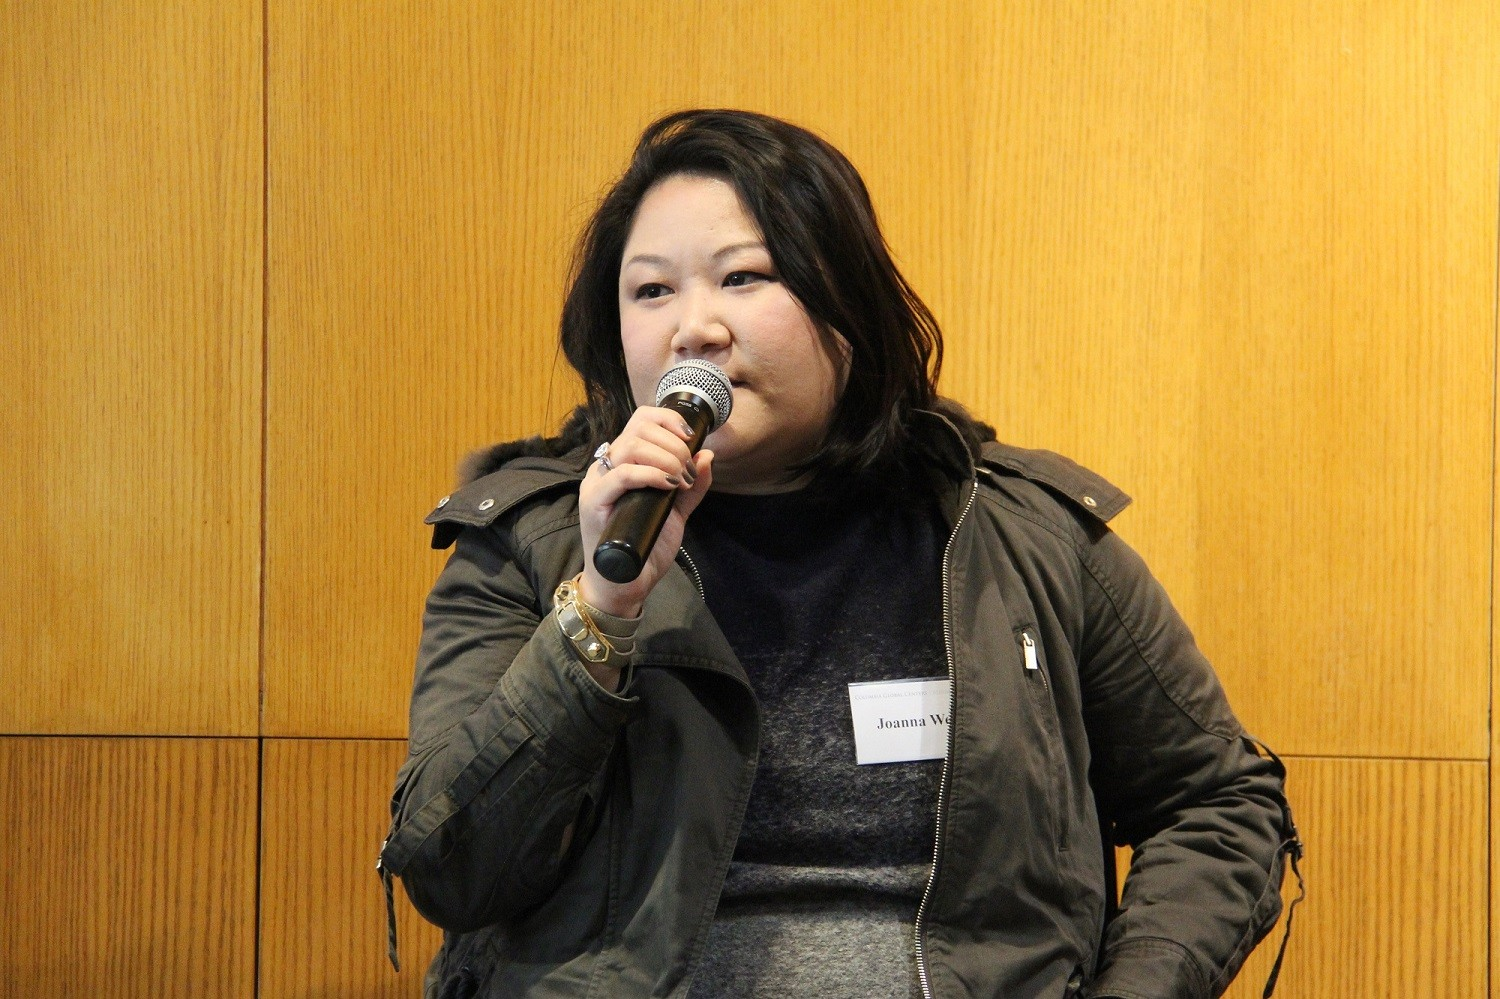 Joanna Wei, Co-founder of Beijing Makerspace